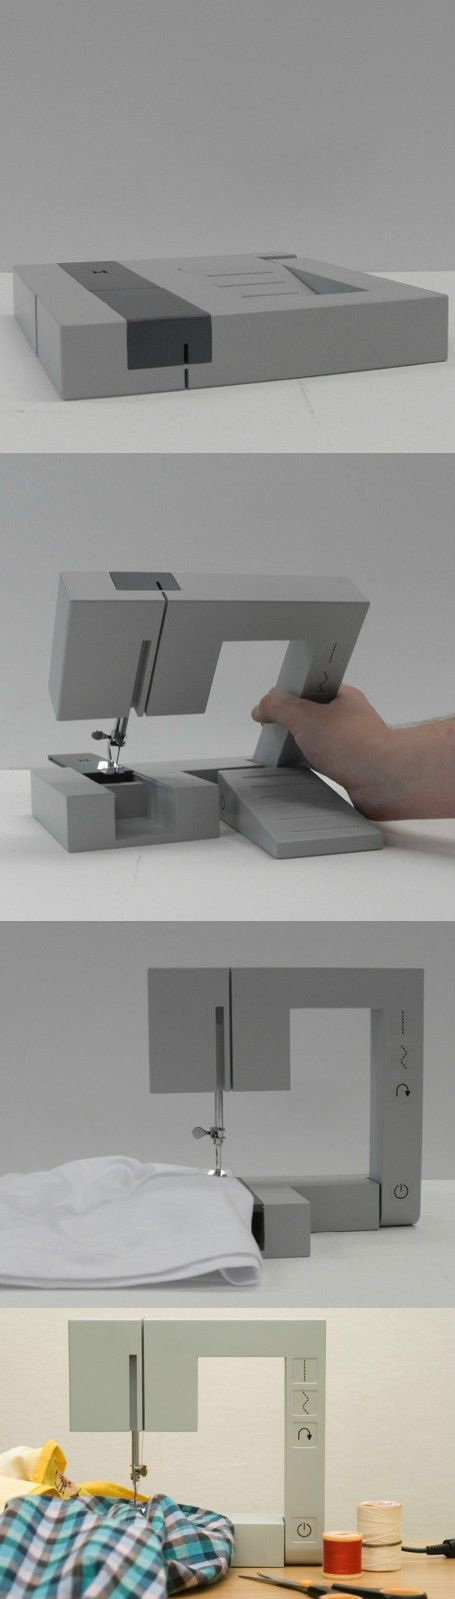 Folding sewing machine design concept #product_design